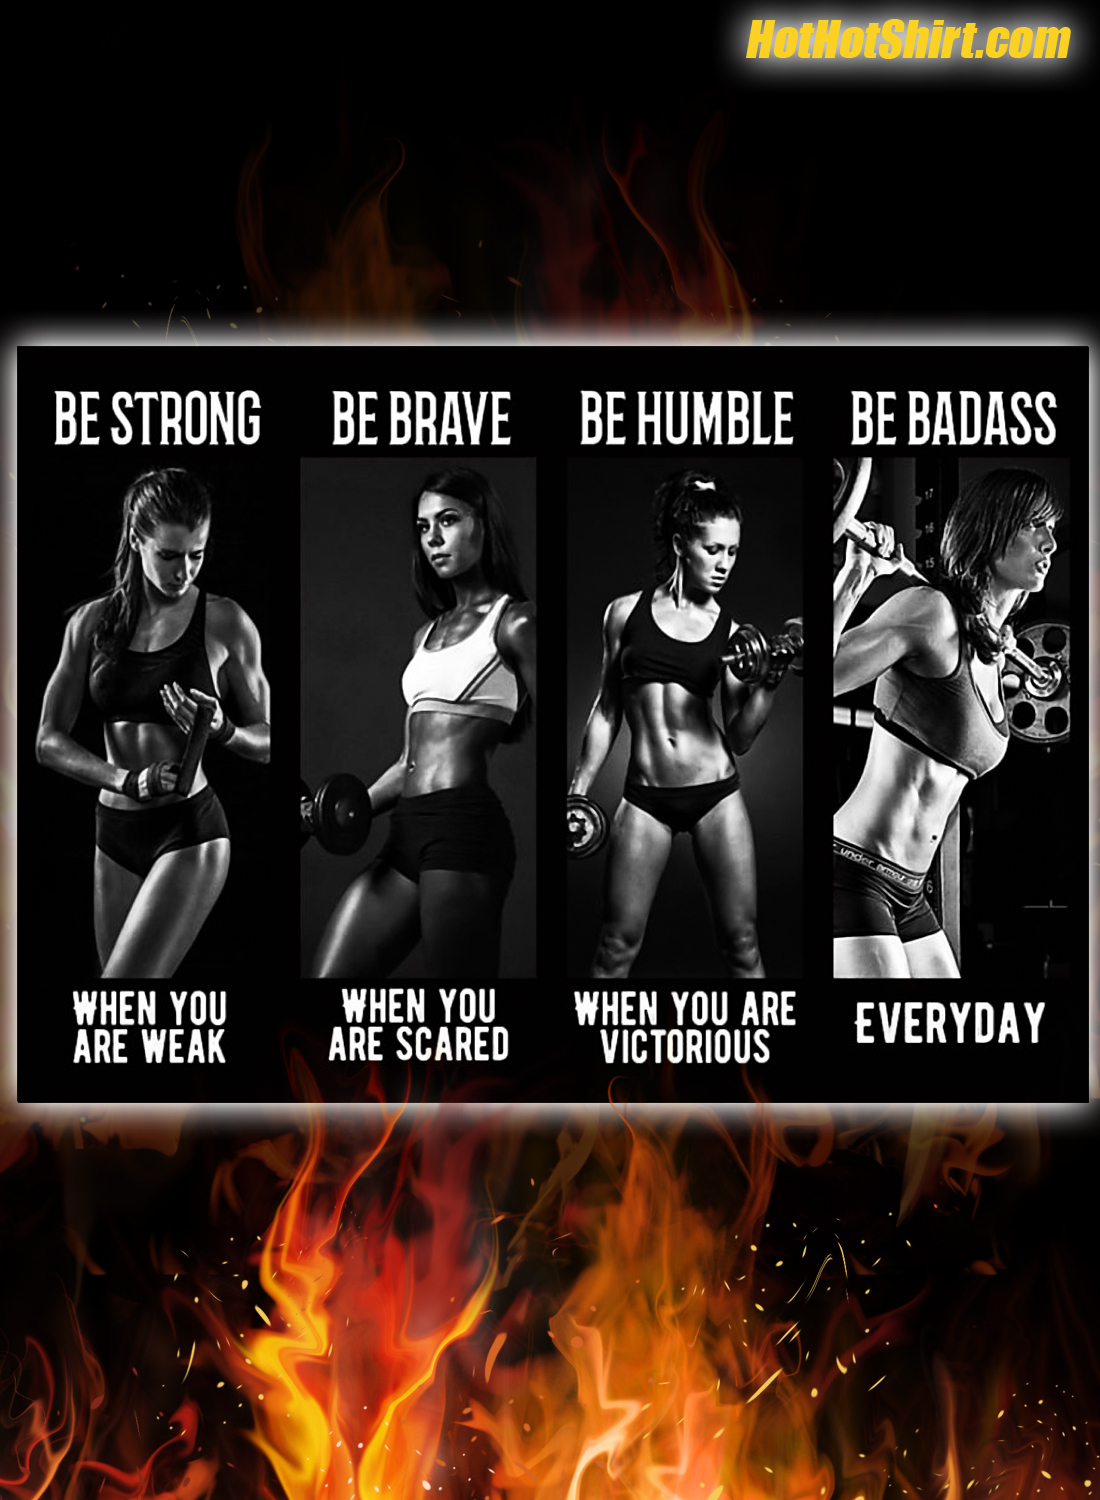 Bodybuilding Girl be strong be brave be humble be badass poster 1